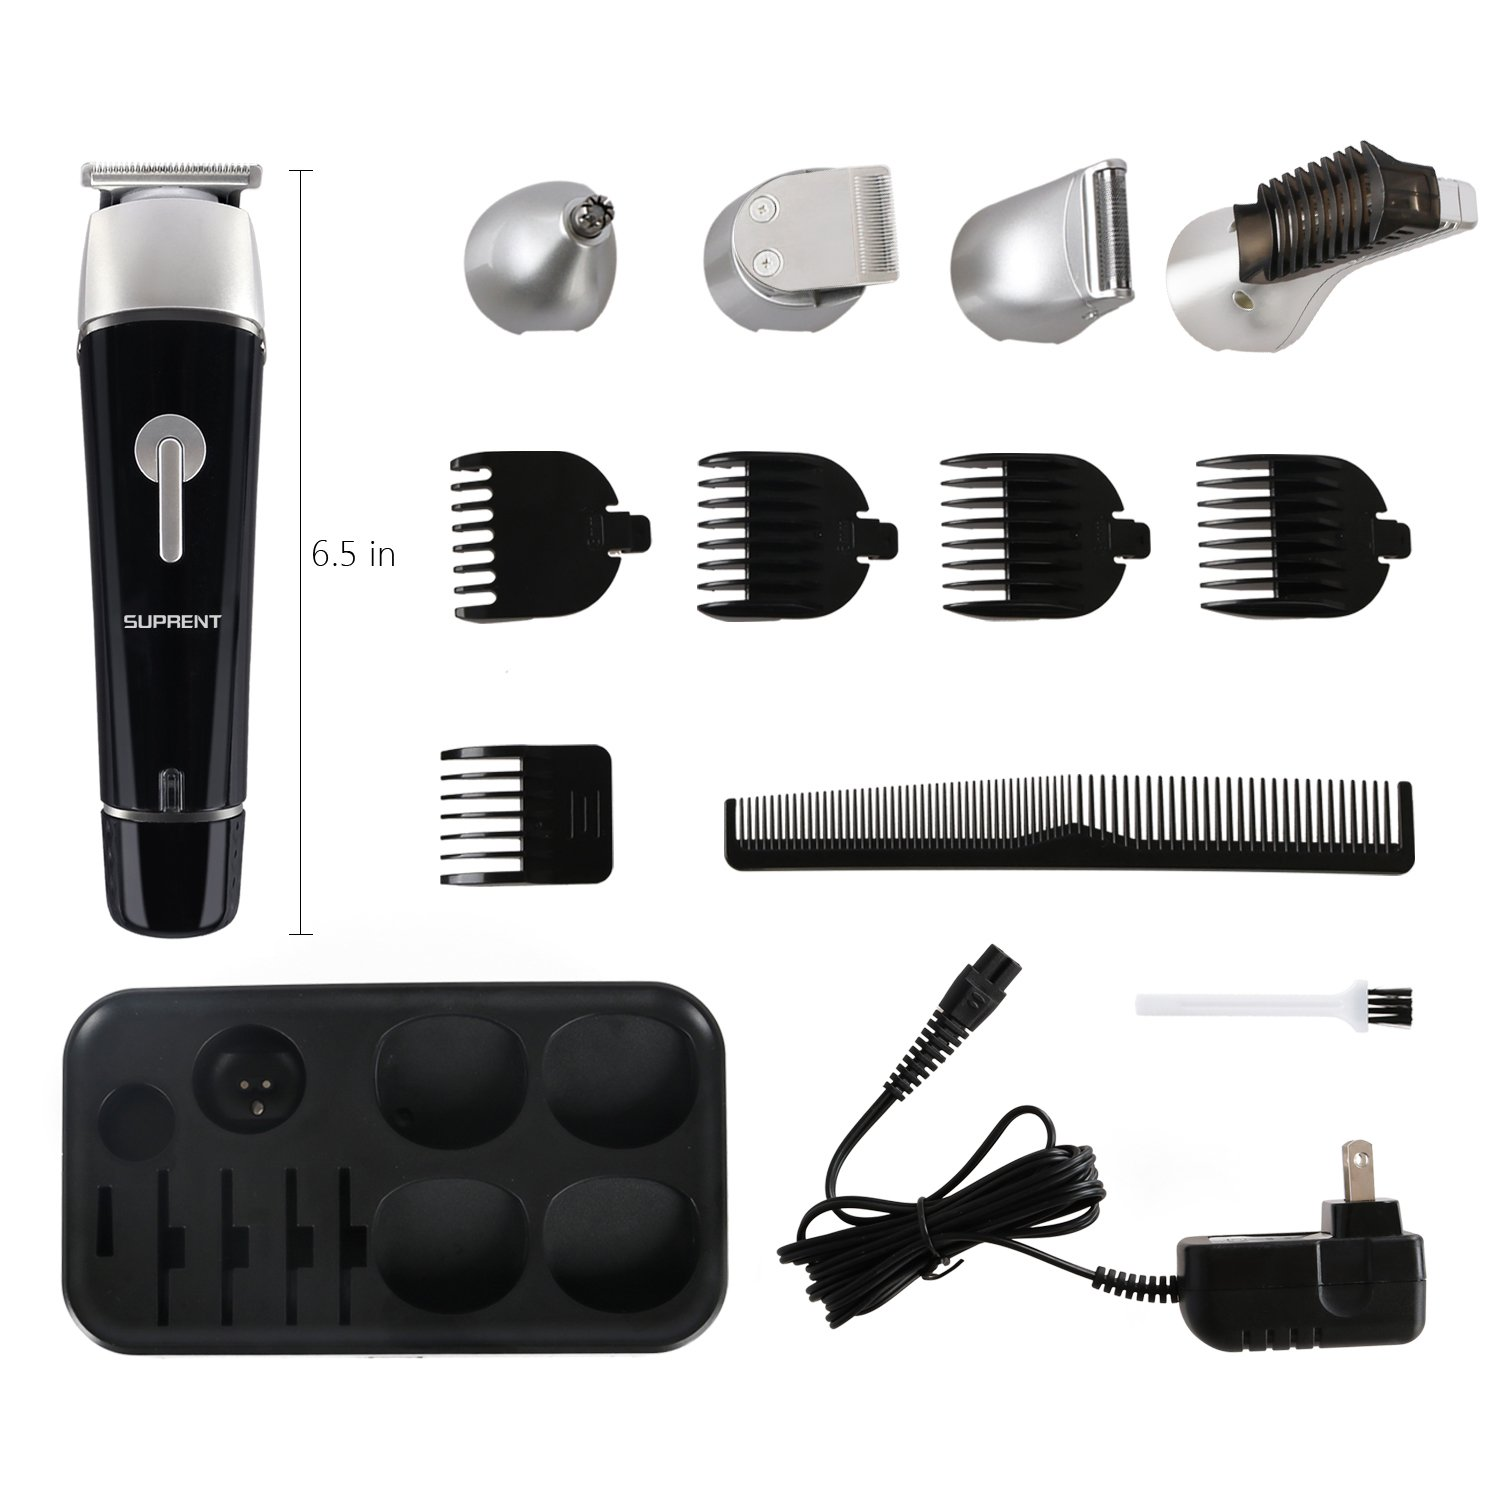 5 In 1 Multi-Functional Groomer Kit Beard Trimmer, Hair Trimmer & Nose Hair Trimmer